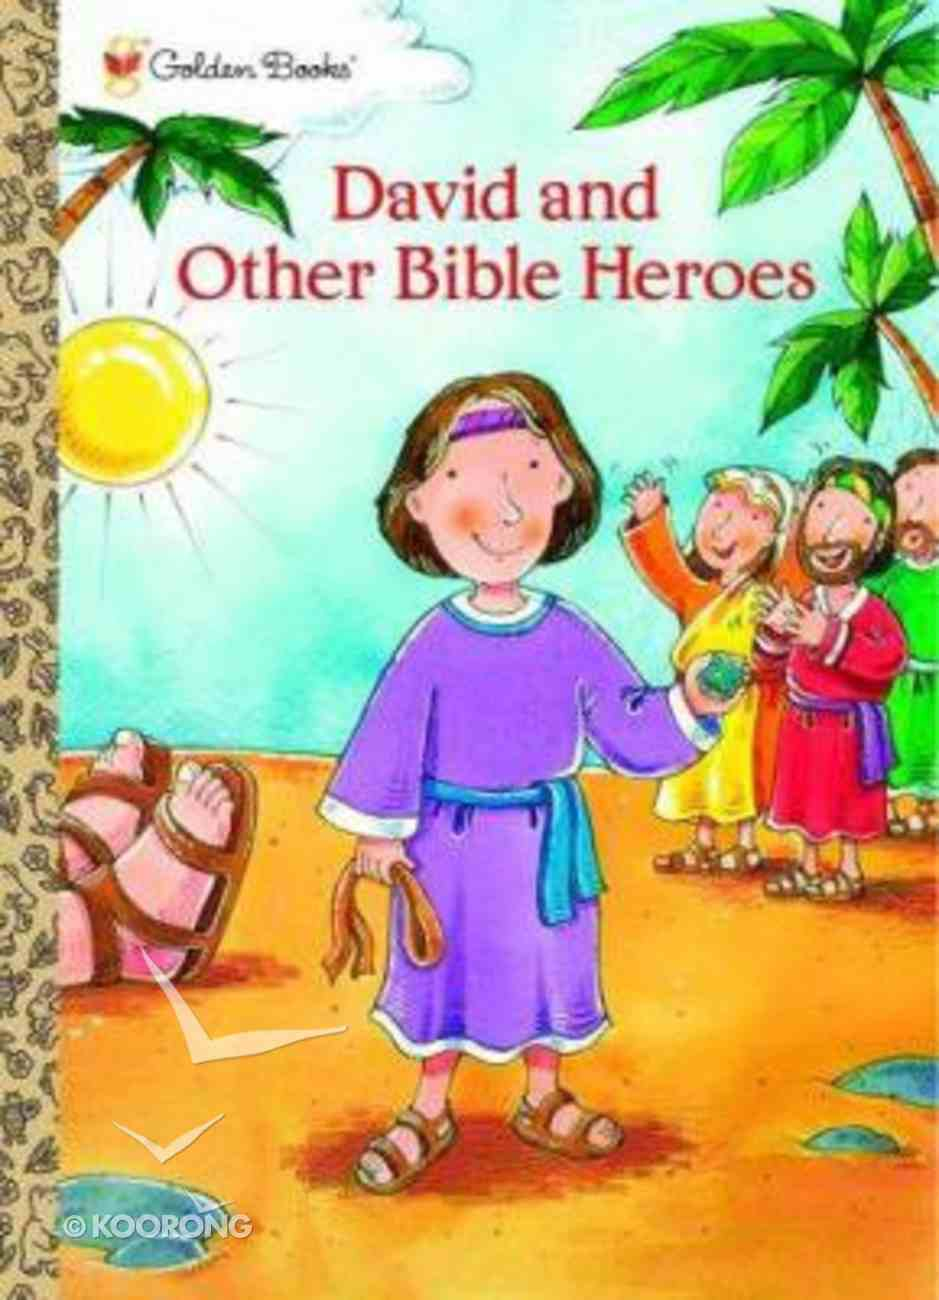 David and Other Bible Heroes (Colouring Book) (Golden Books Series) Paperback